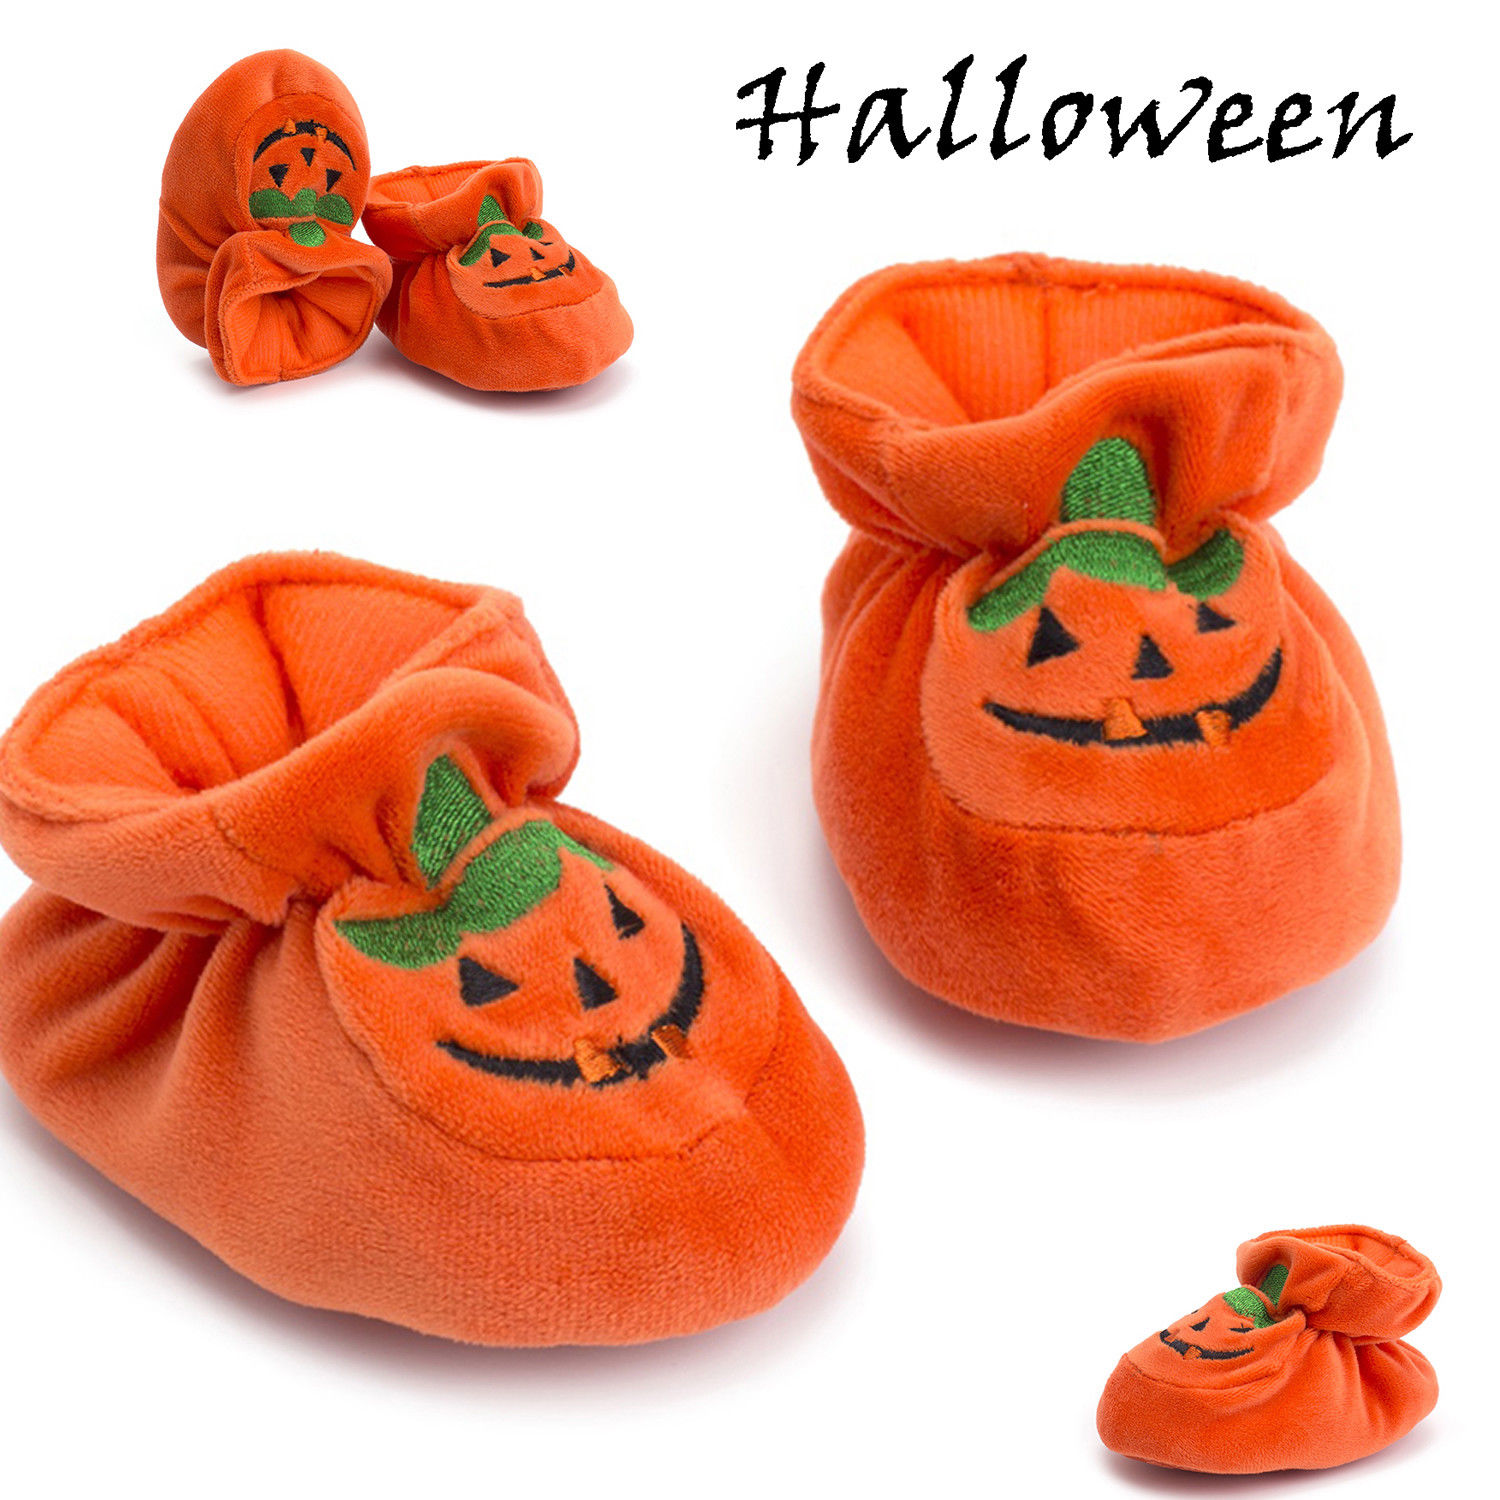 Halloween Pumpkin Pretty Toddler Baby Girls Boys Casual Crib Shoes 0-18M Cotton Print Elastic Waist Soft Shoes